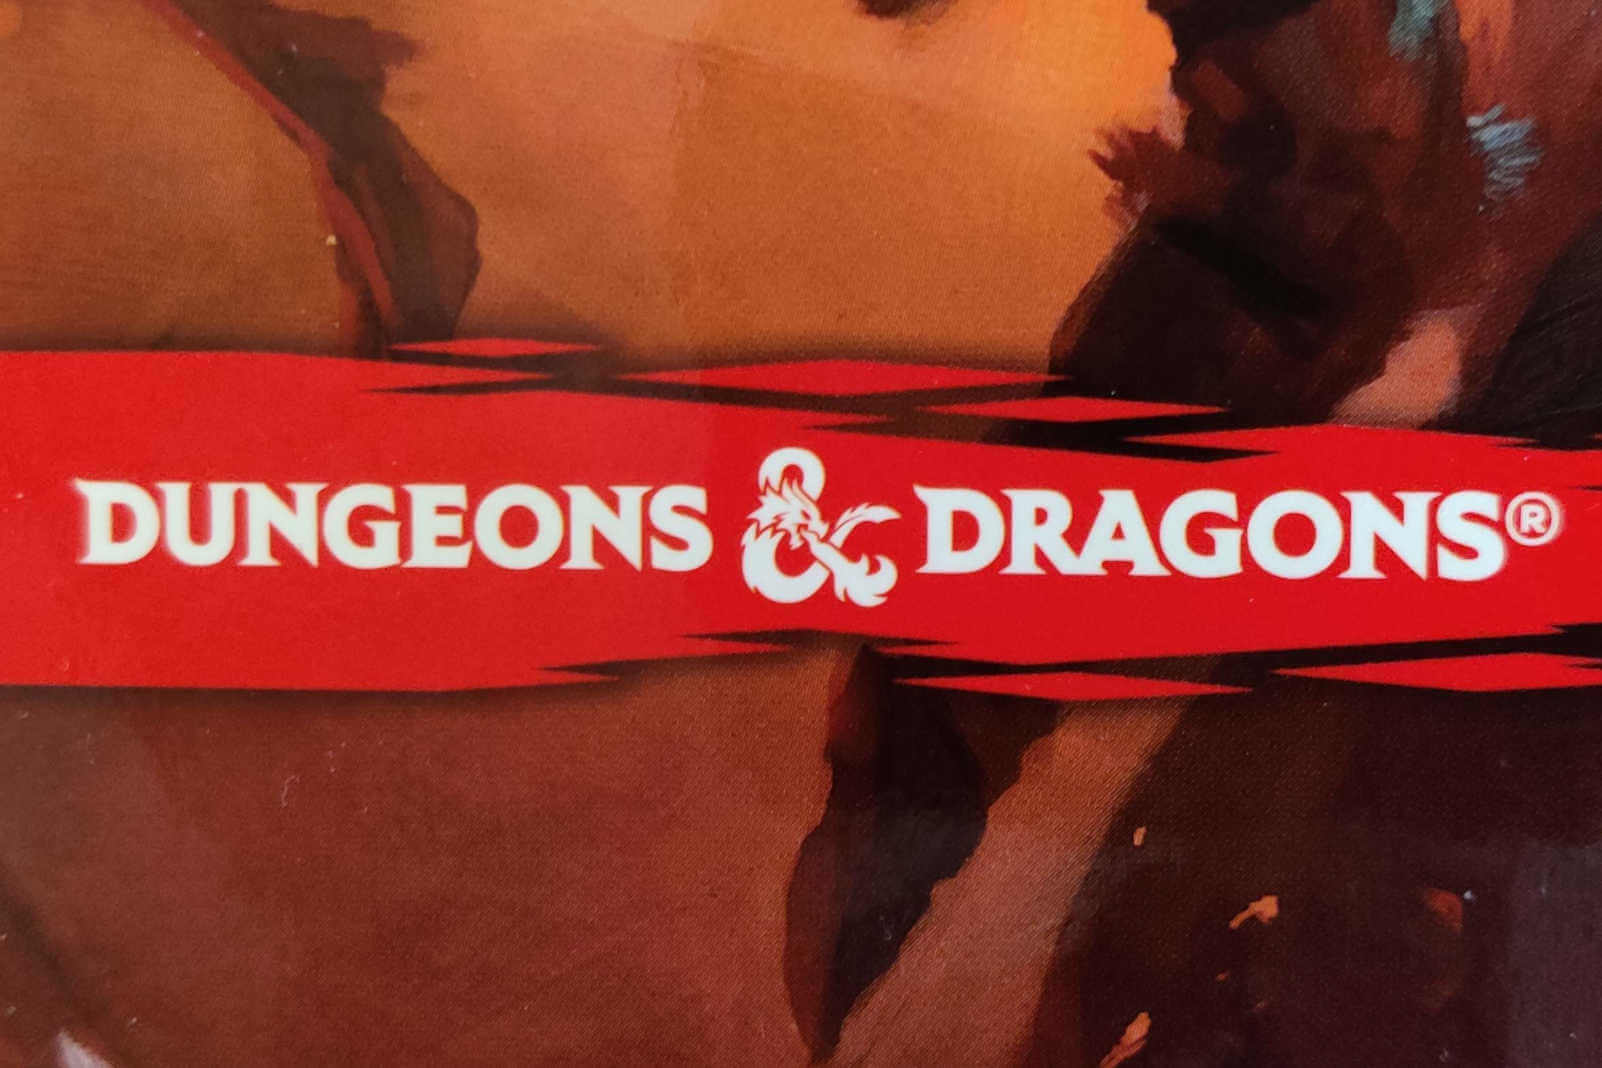 Dungeons and dragons cover